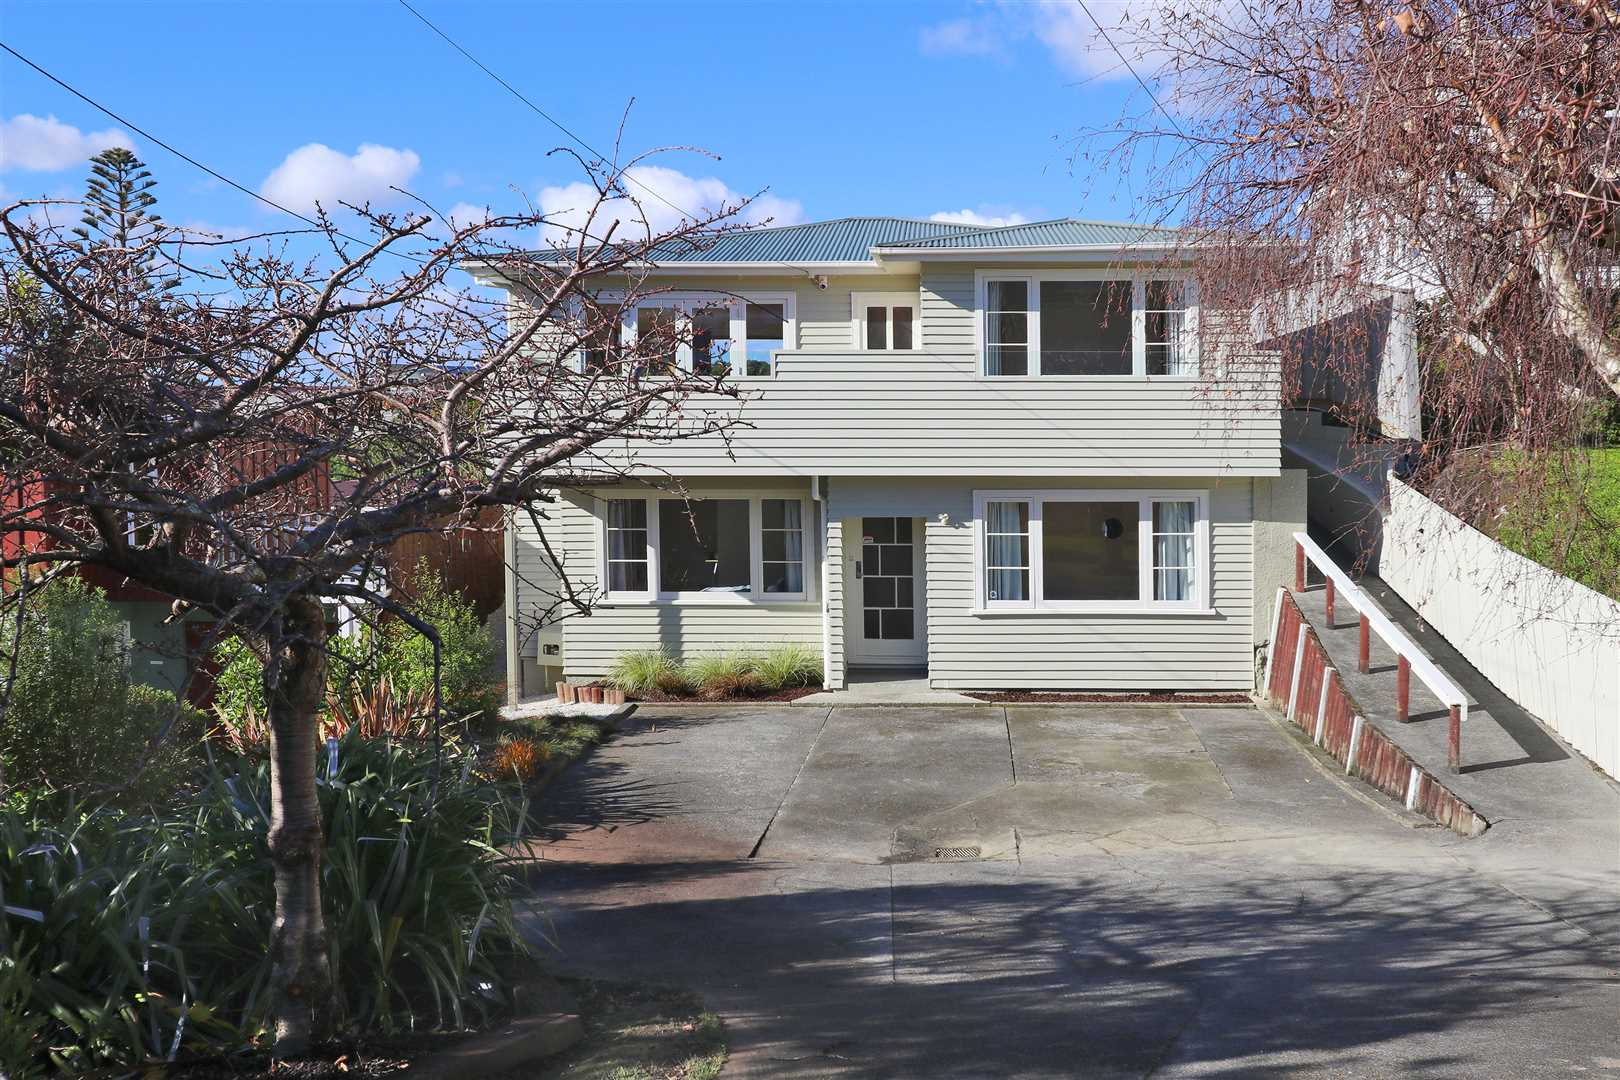 Owners Bought - Be Quick To View